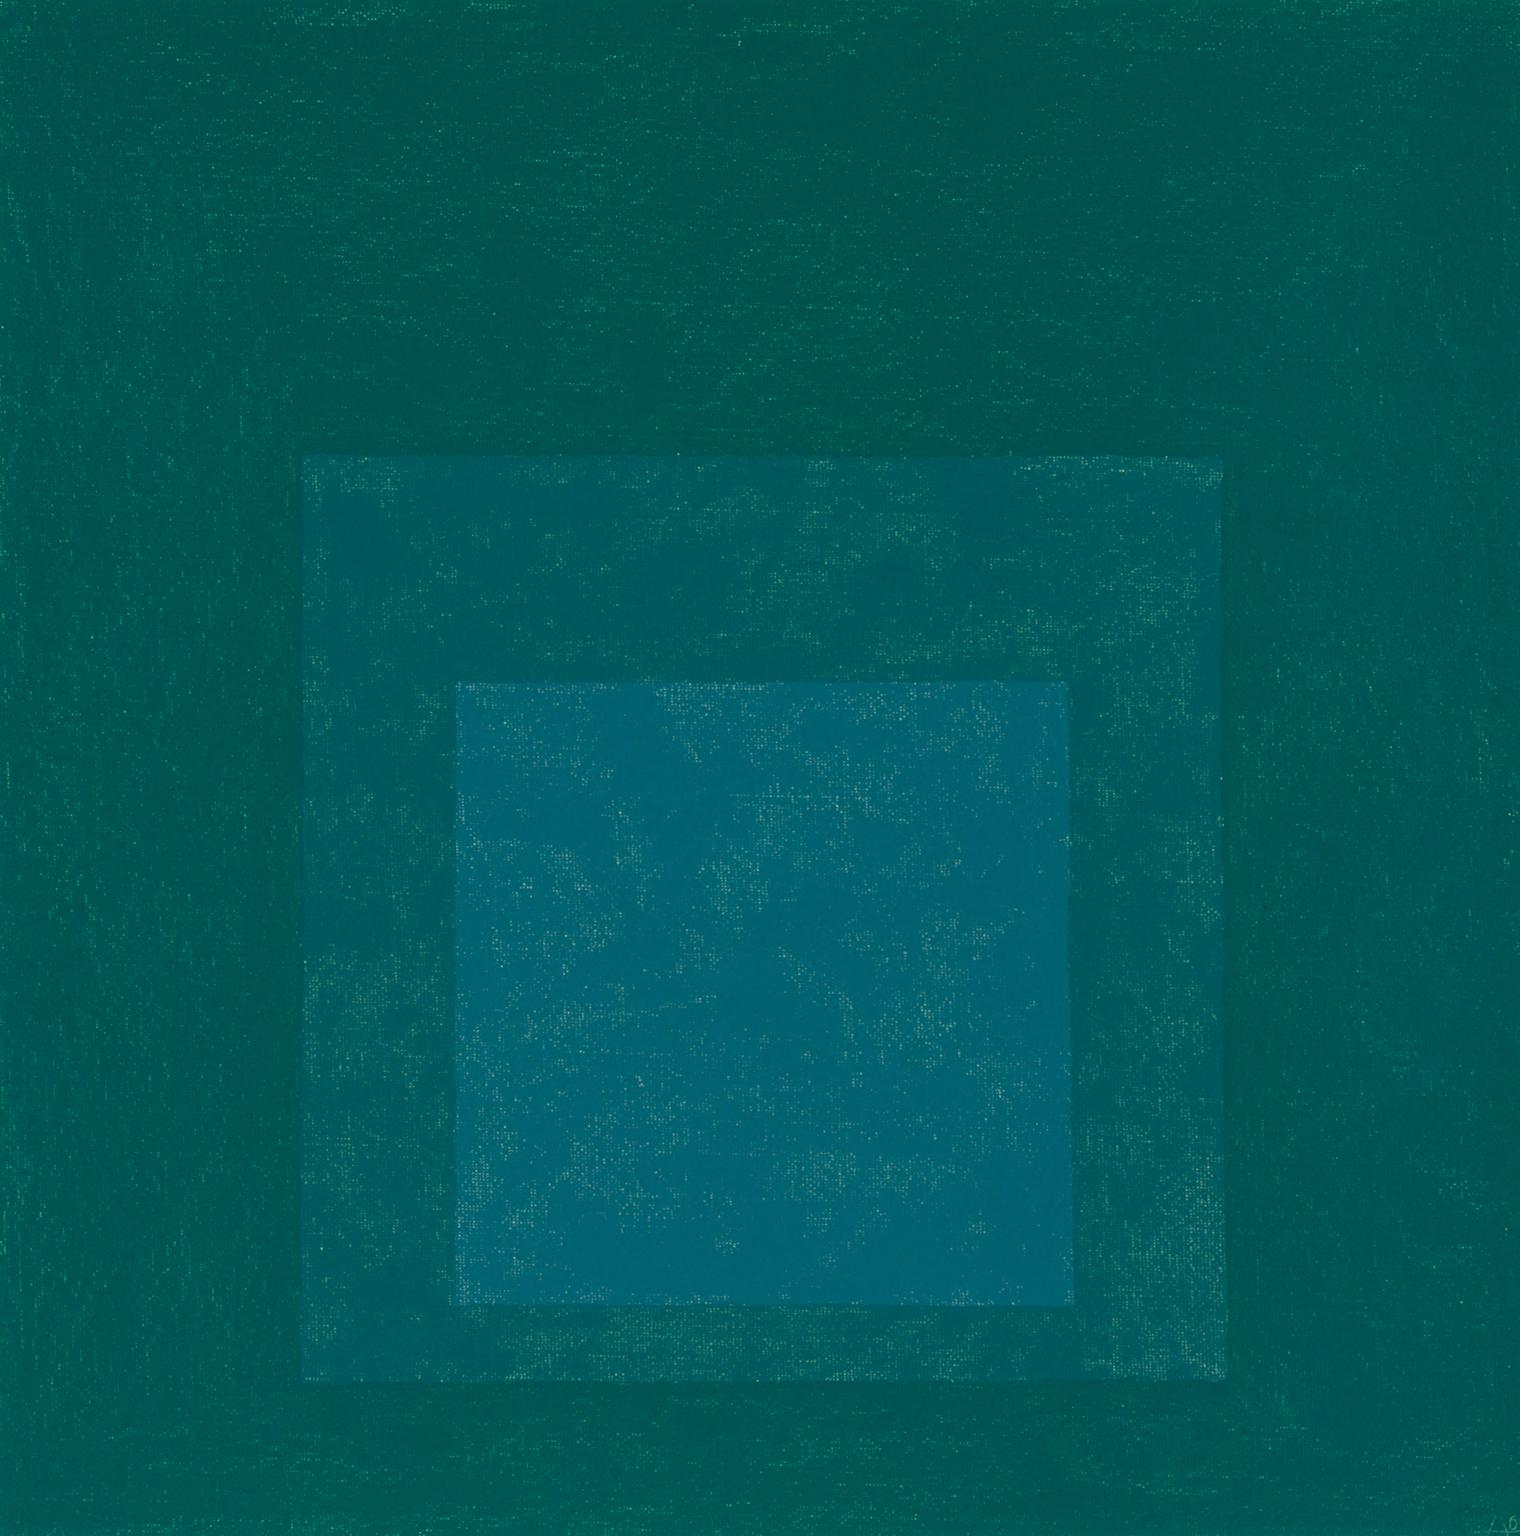 Study for Homage to the Square, 1964